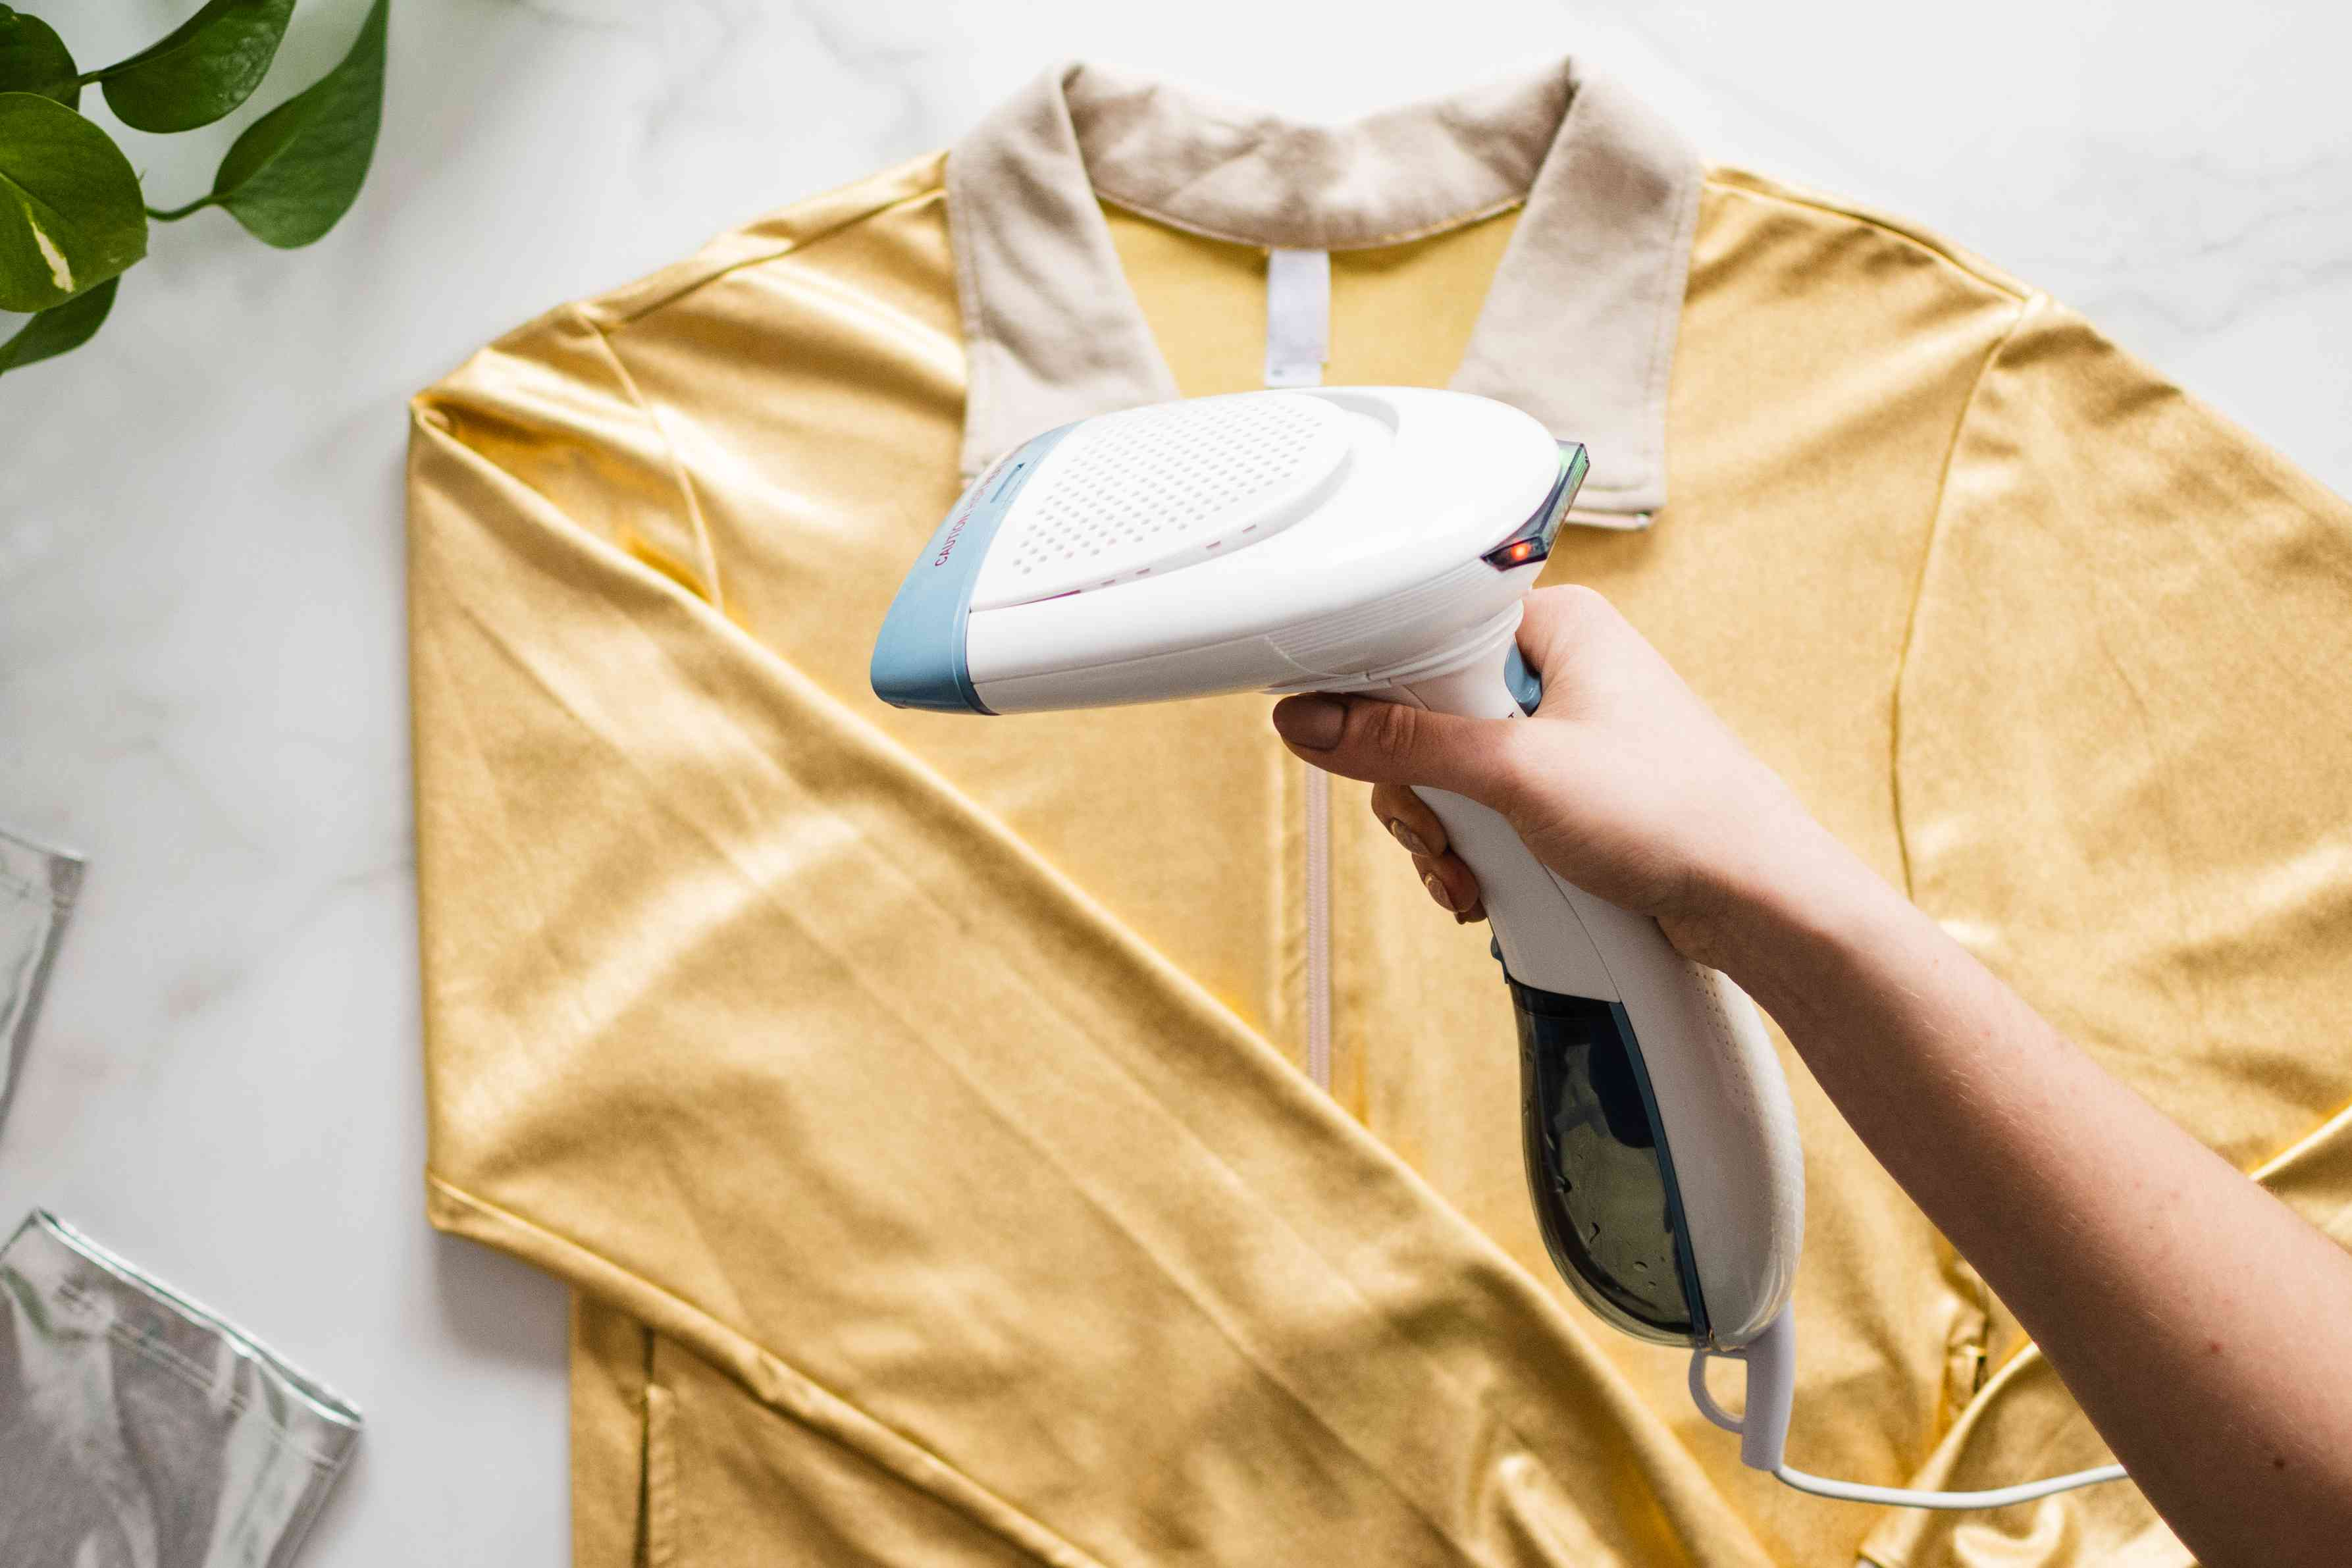 Clothes steam passing over yellow metallic jacket to remove wrinkles